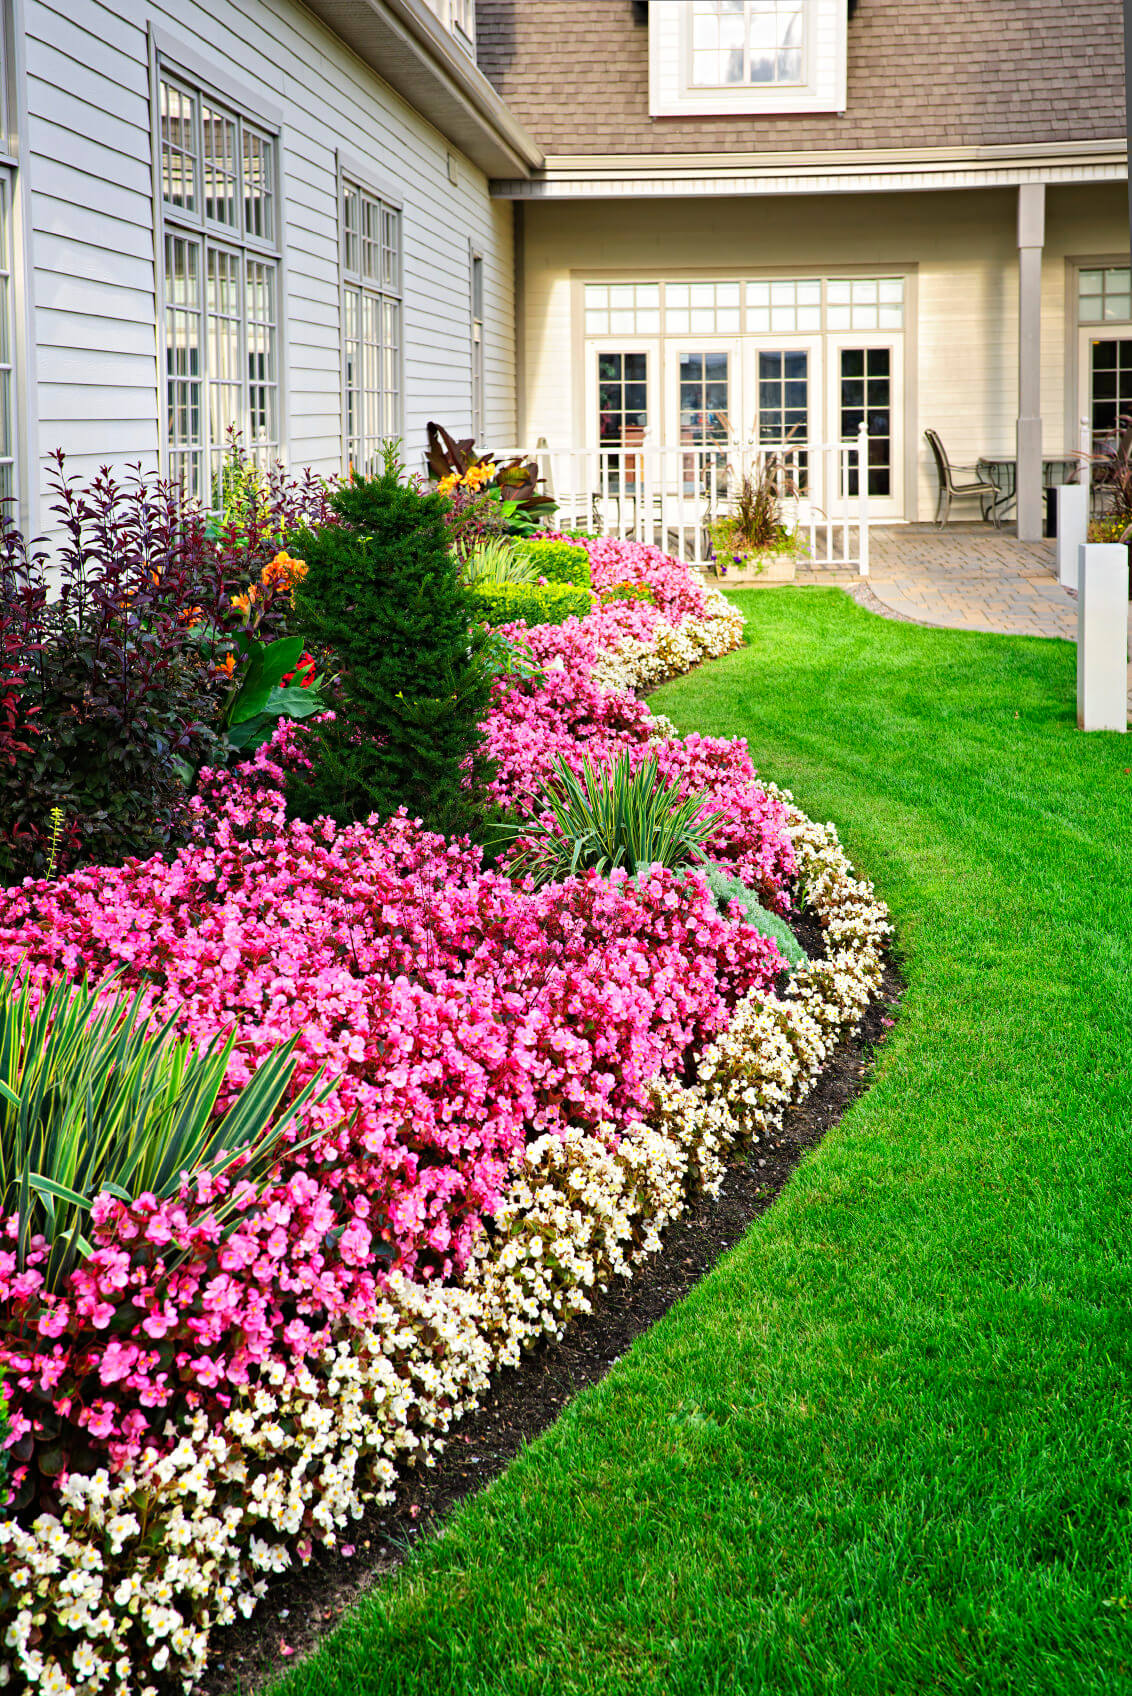 101 front yard garden ideas awesome photos for Flower ideas for front yard